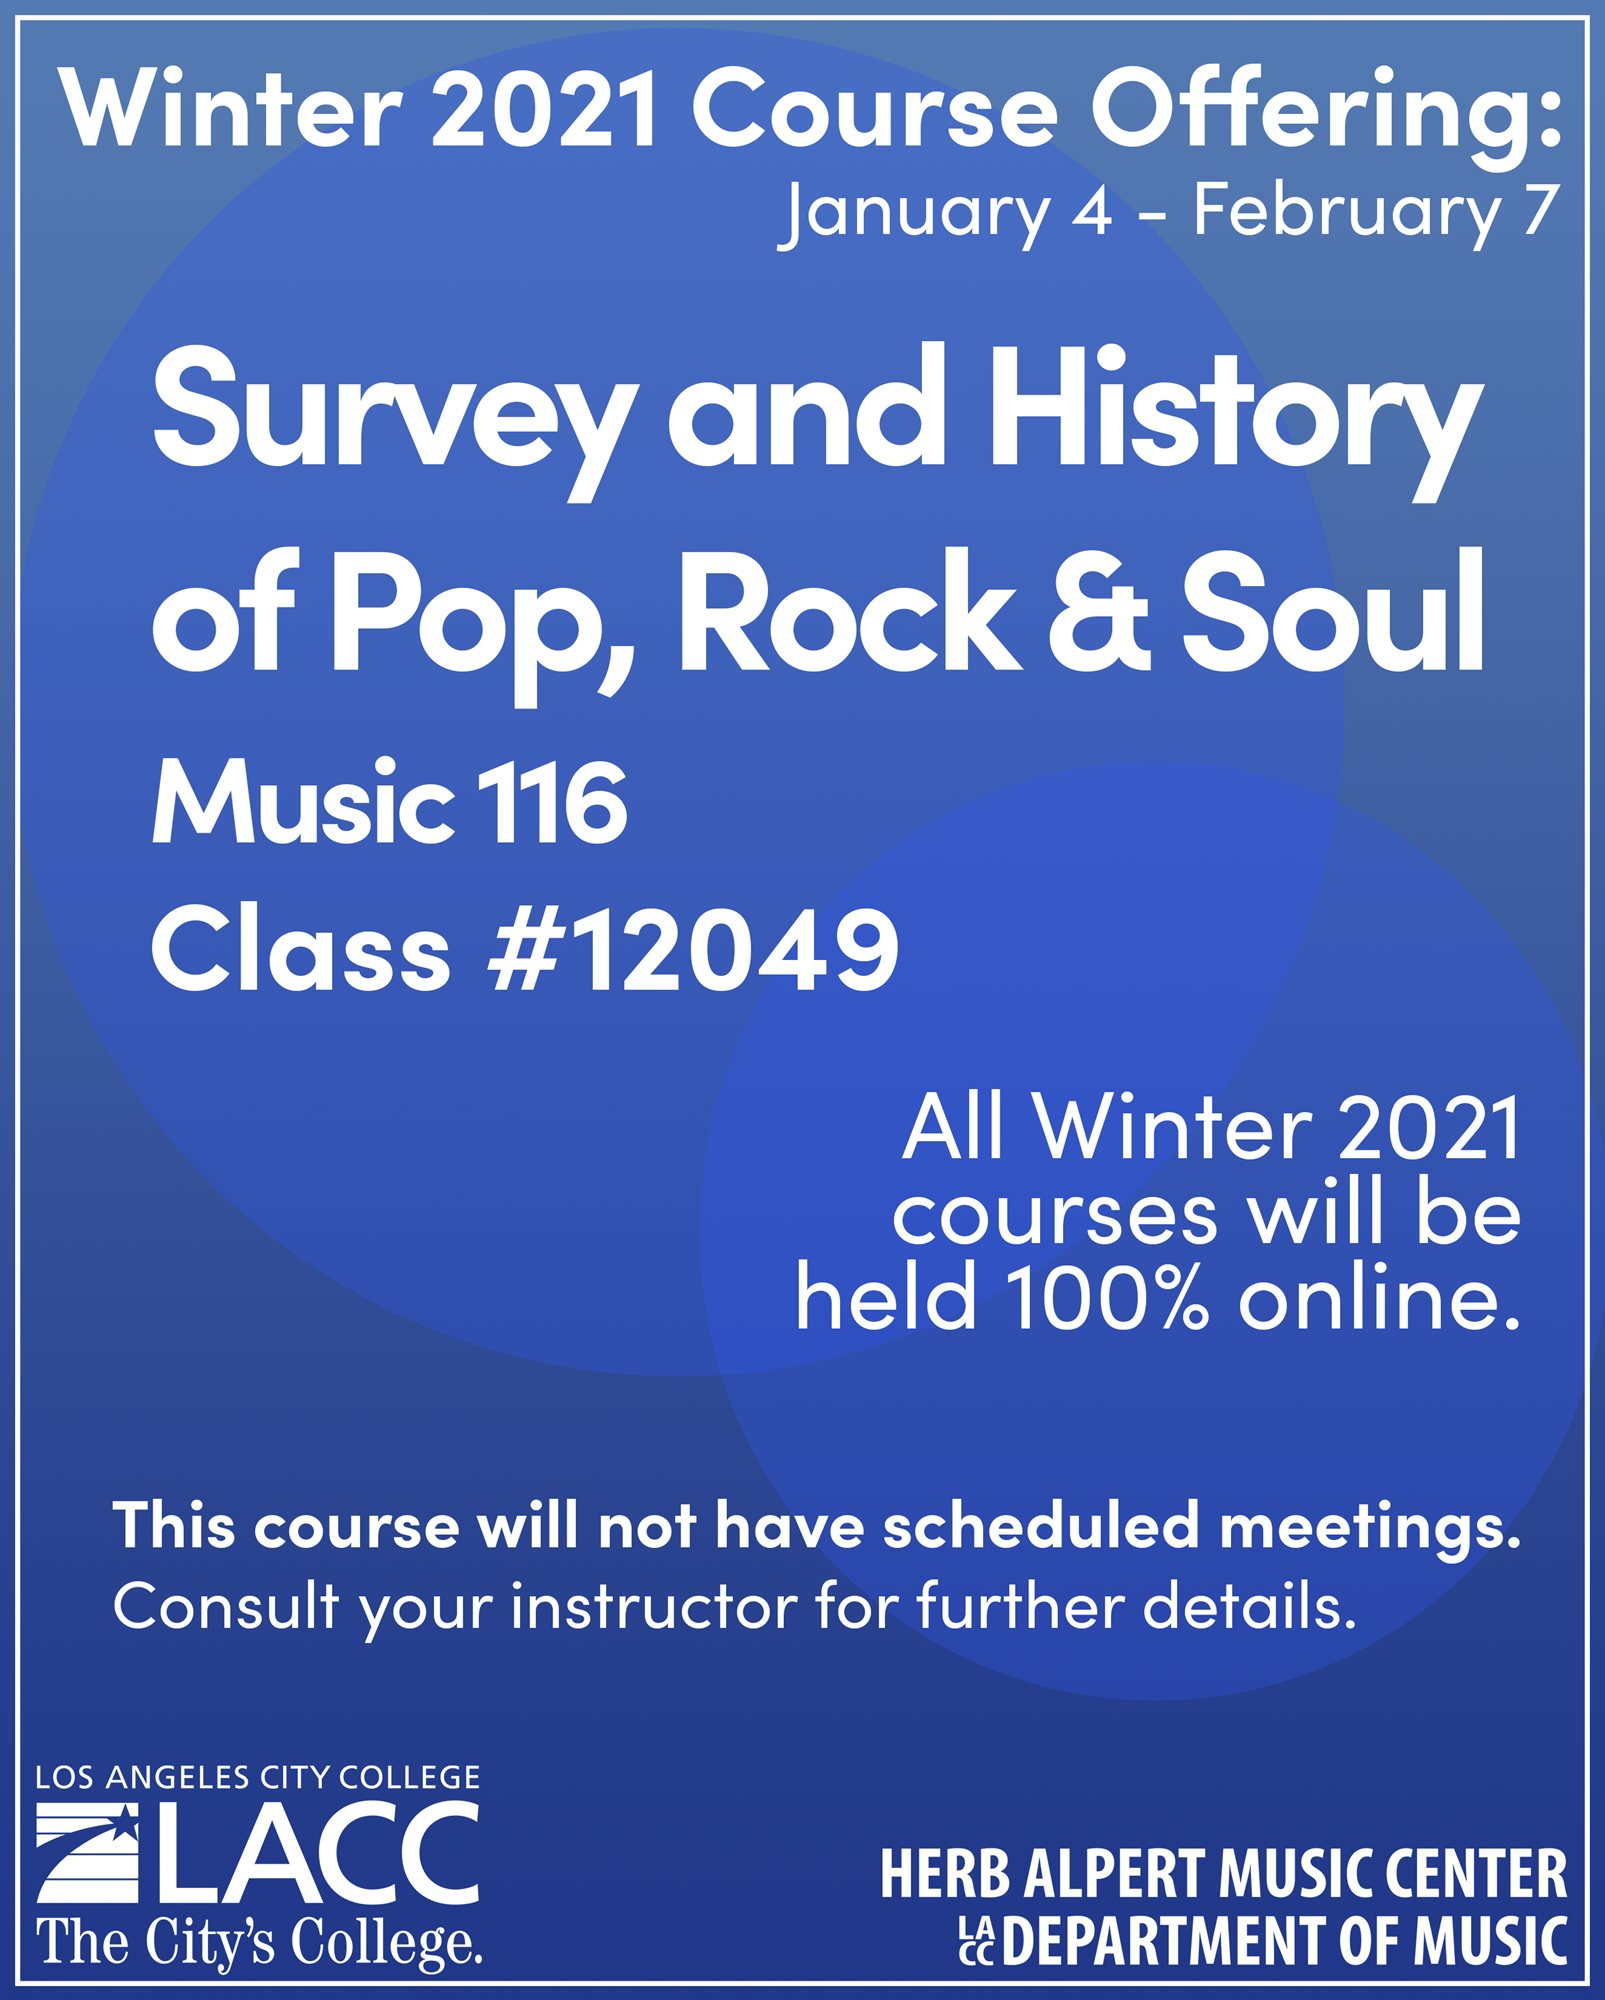 Herb Alpert Music Center